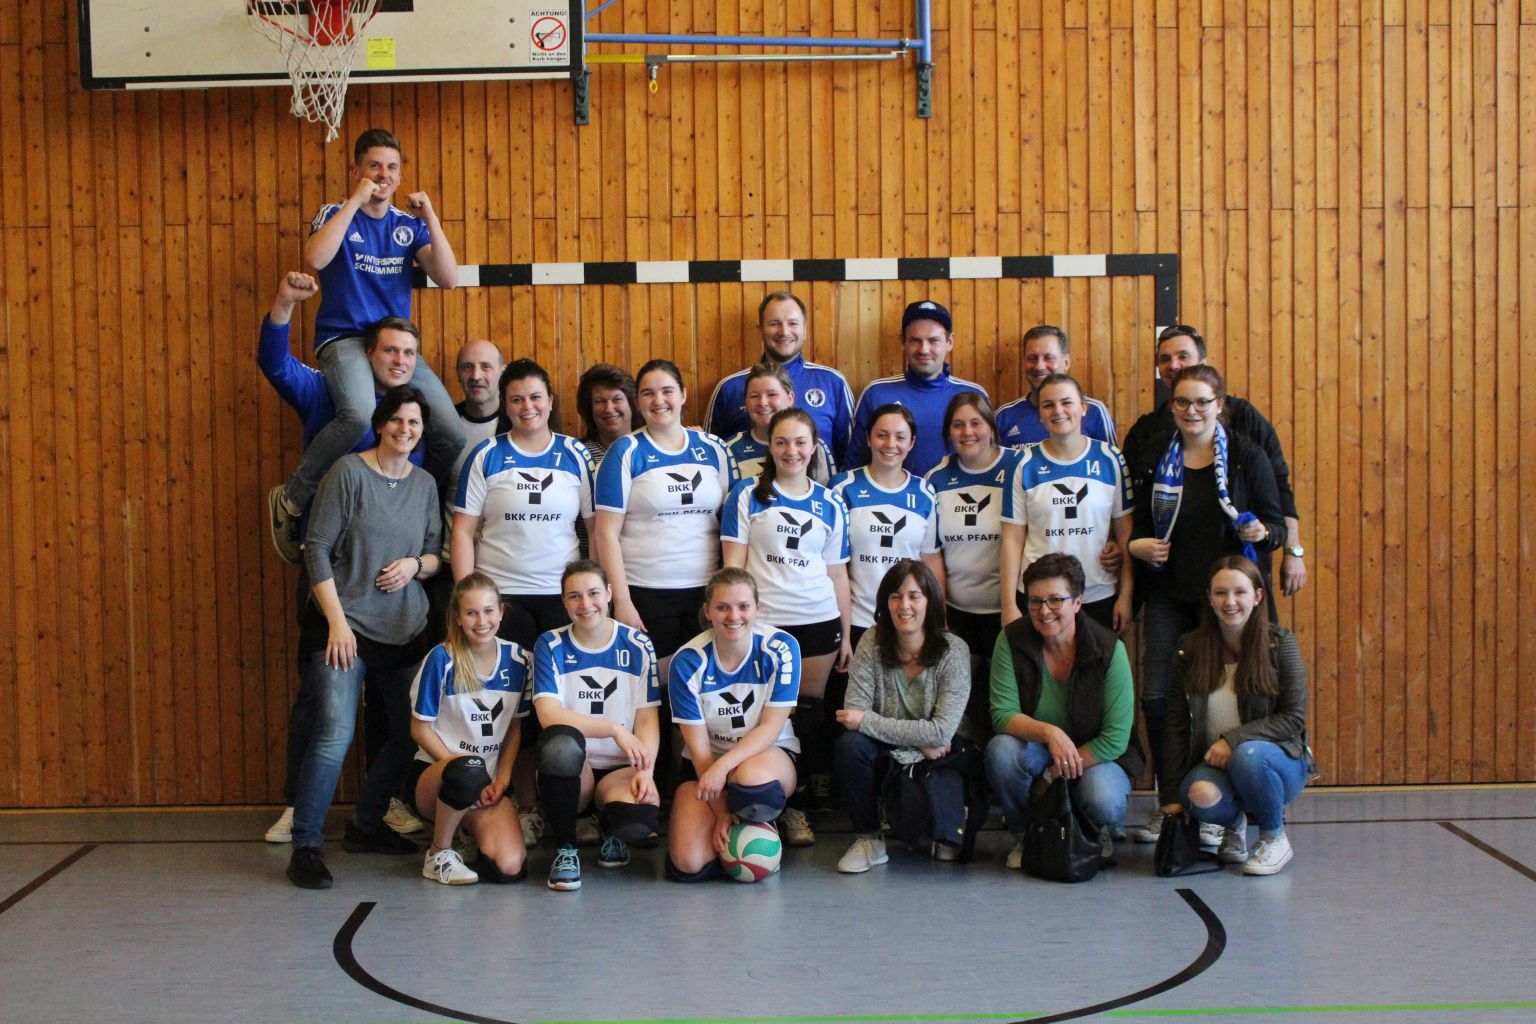 170325_Volleyball_IMG_4248